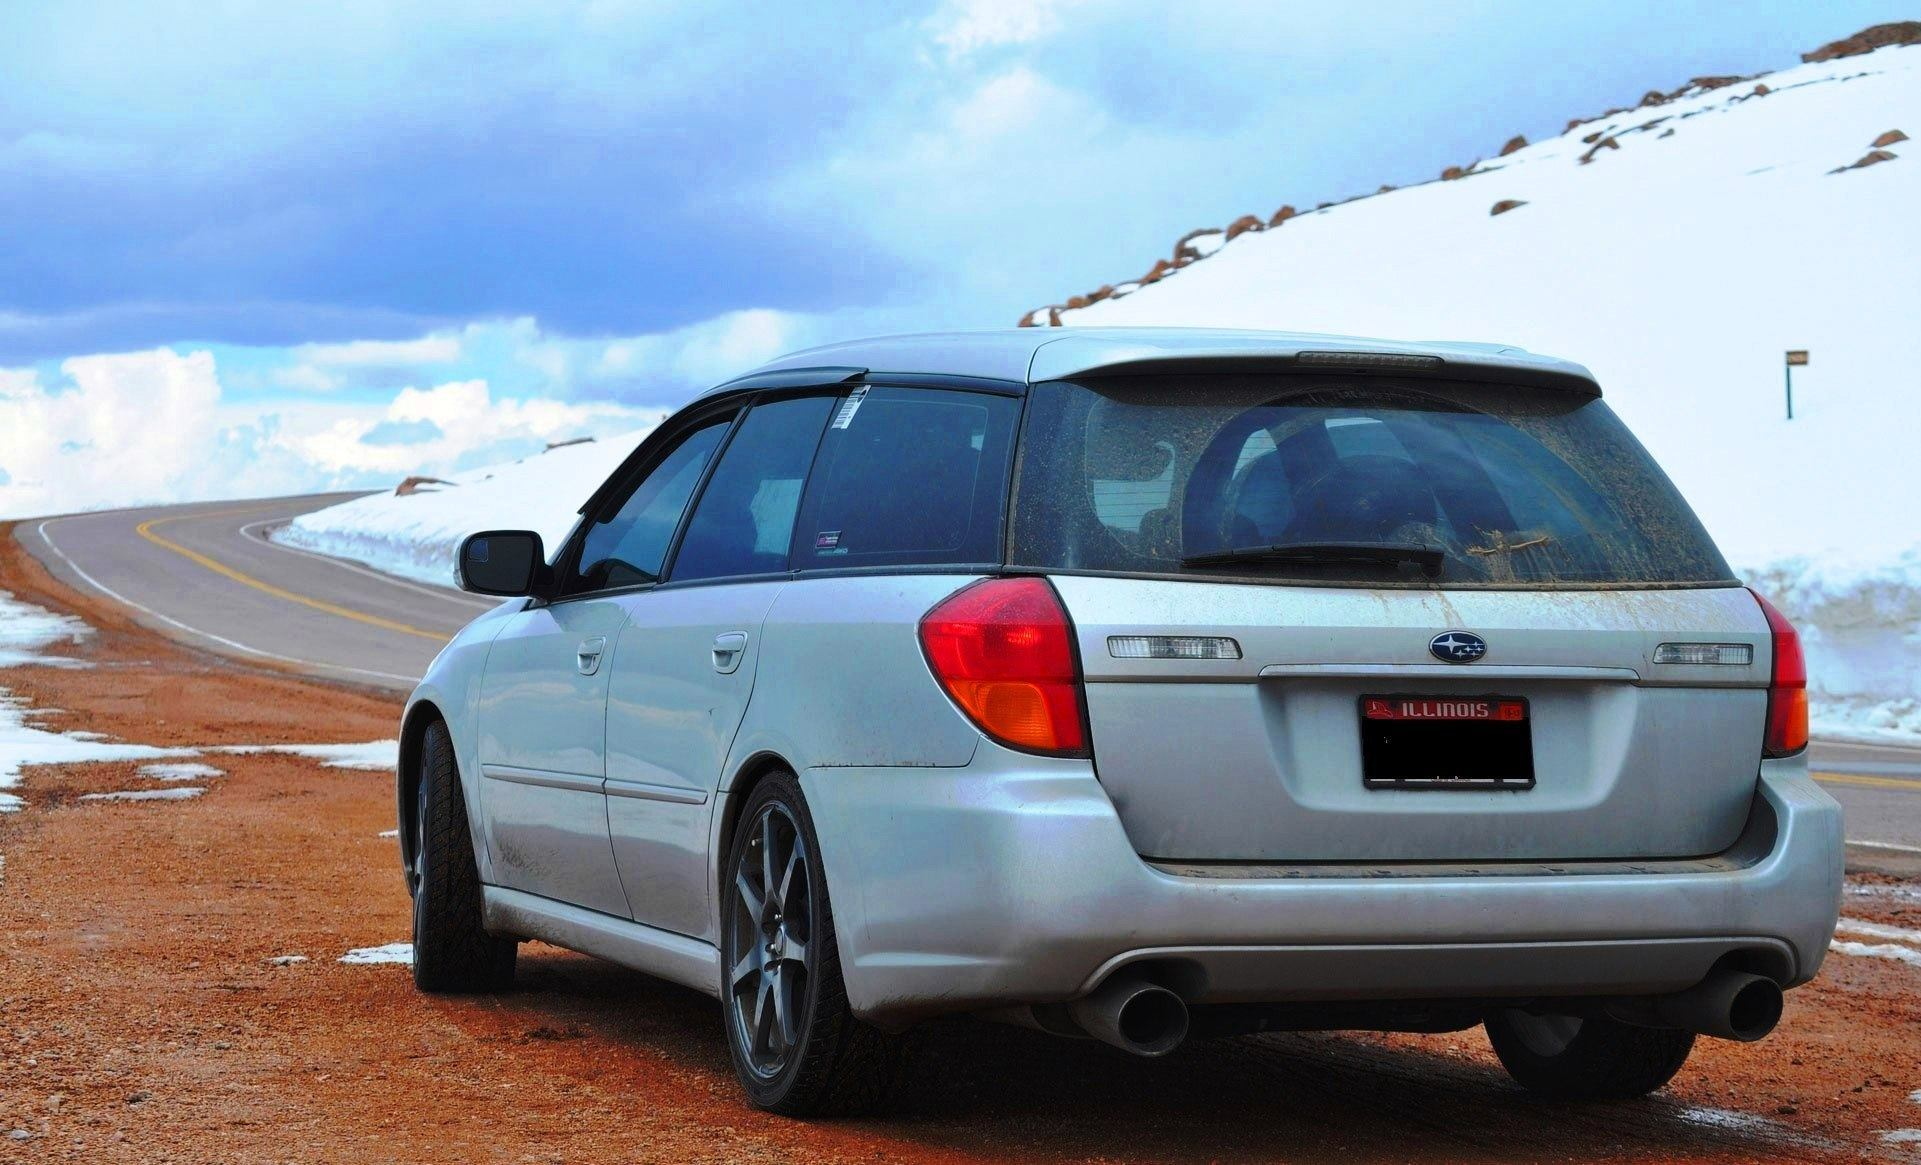 Driving Adventures Pikes Peak and the Colorado Continental Divide